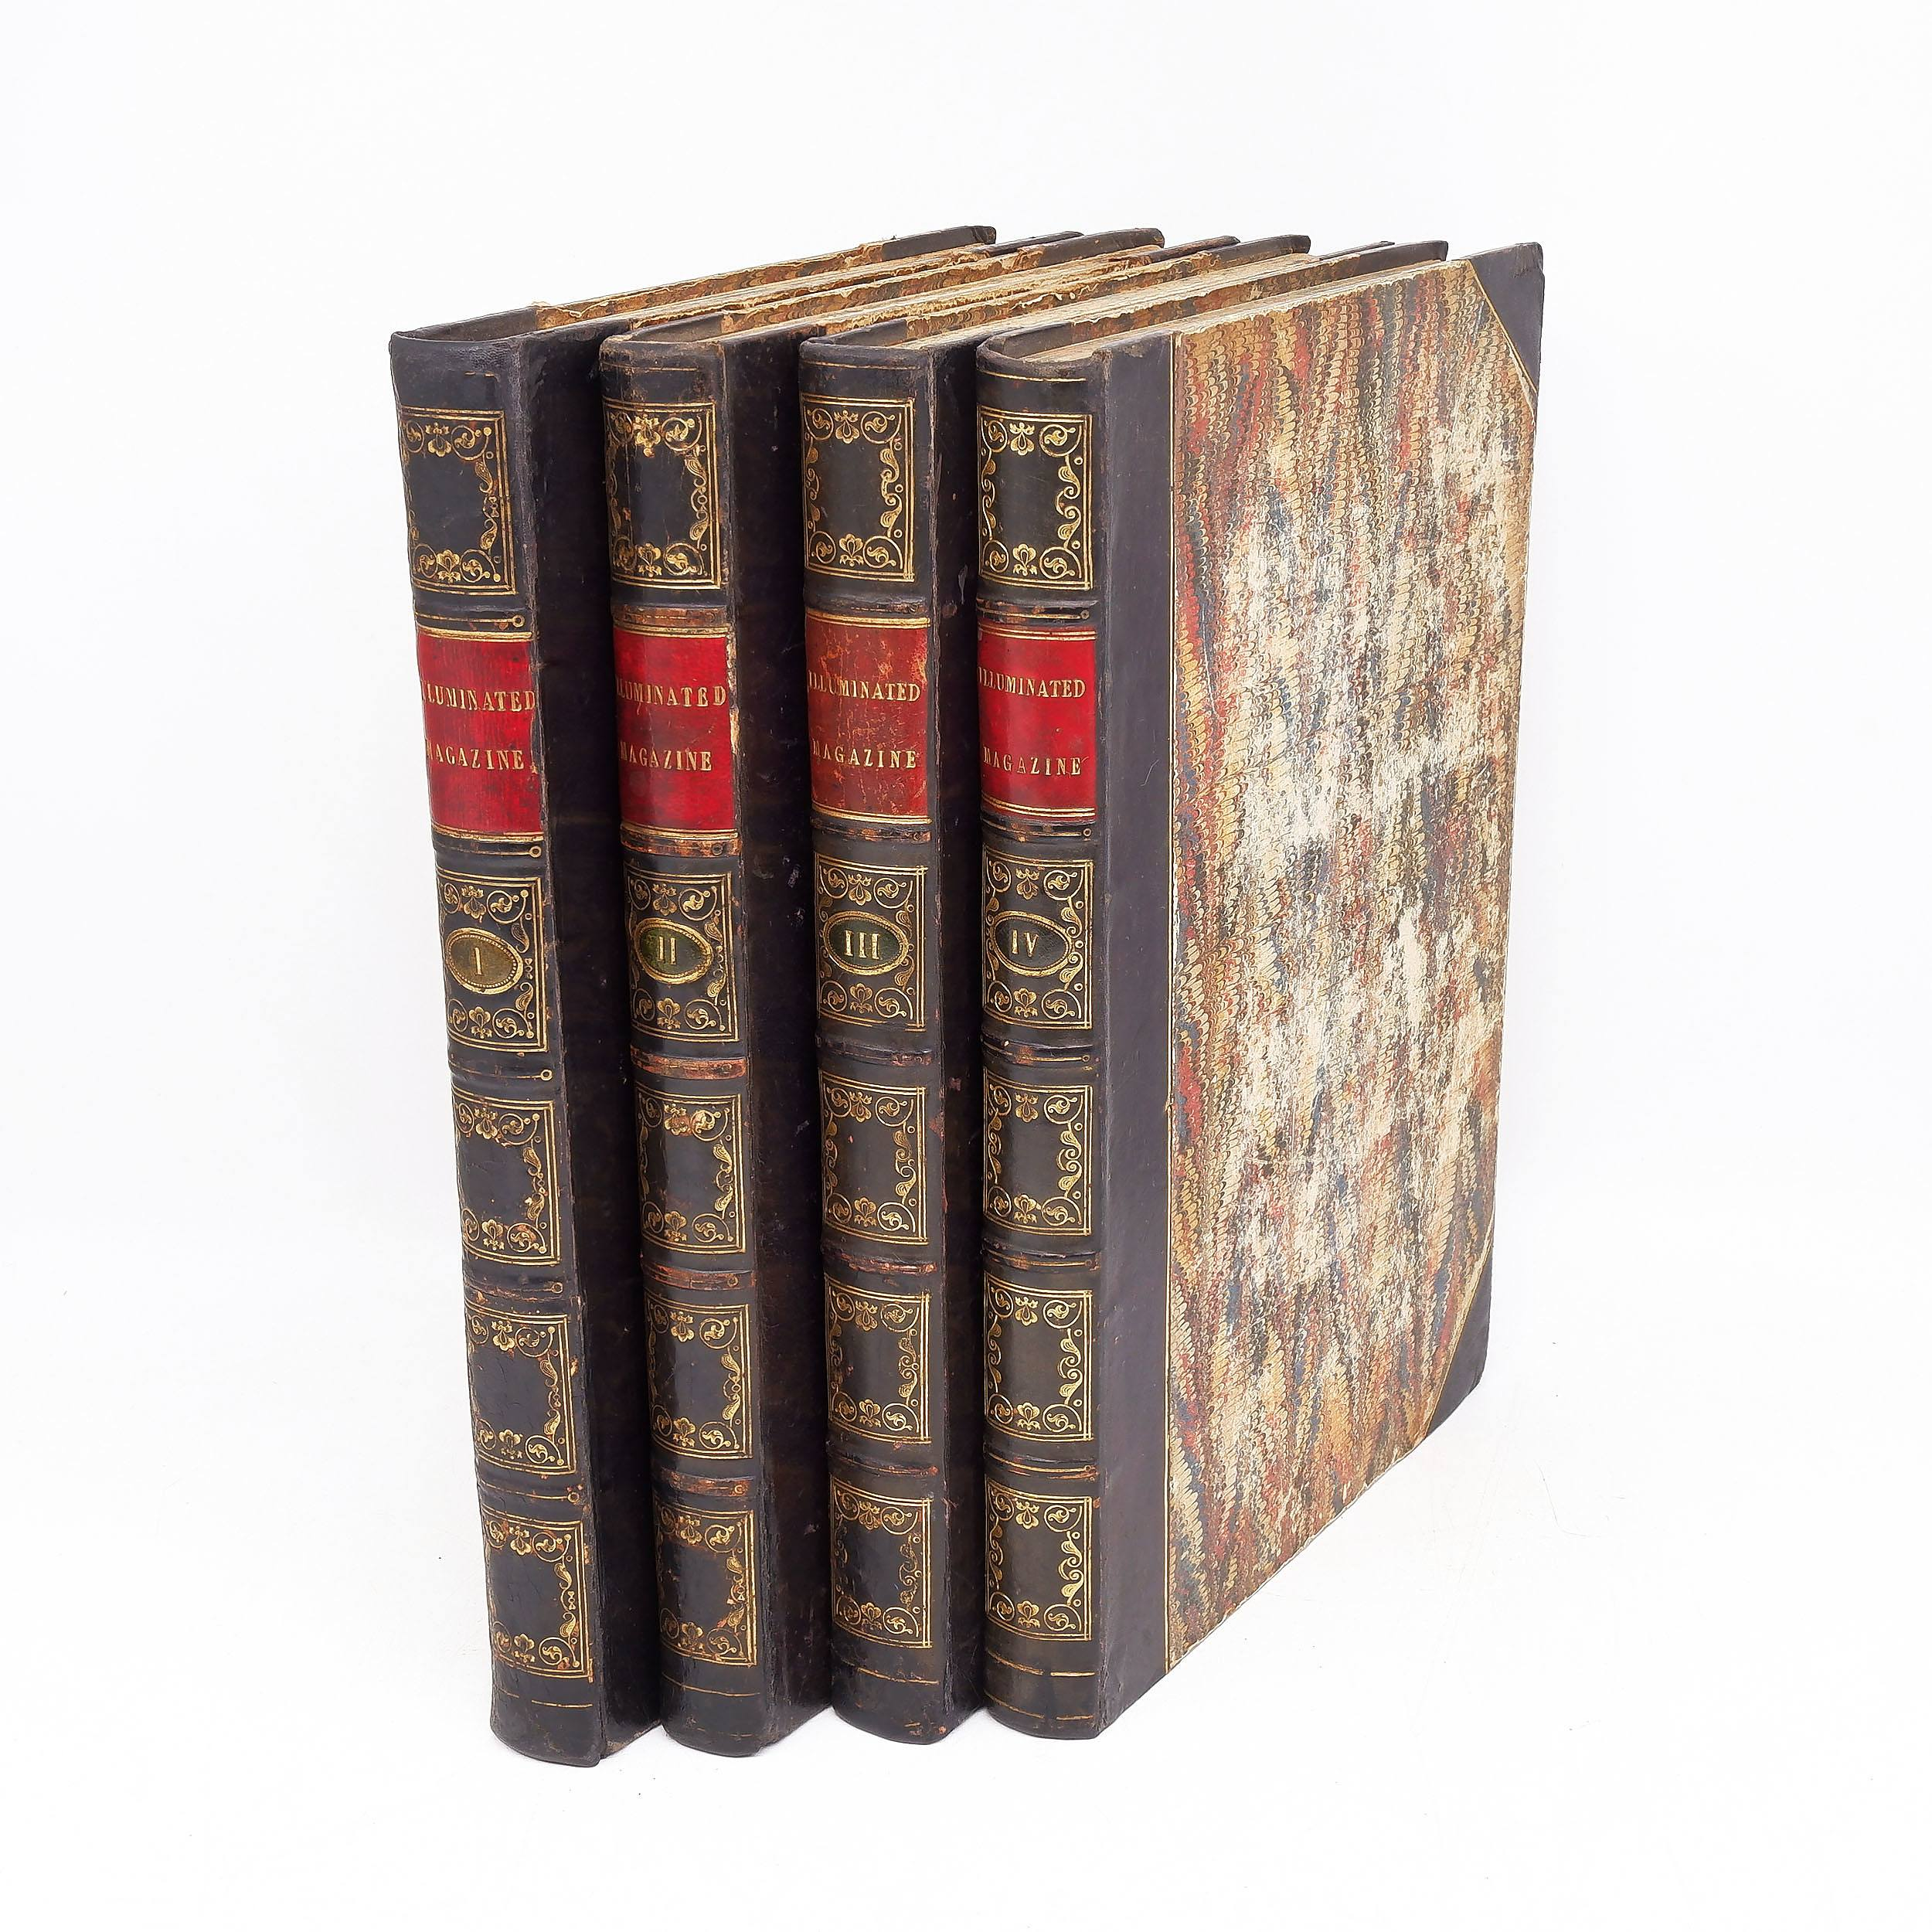 'Volumes 1-4 of the Illuminated Magazine, Gilt Tooled Leather Bound Books, 1843-1845'